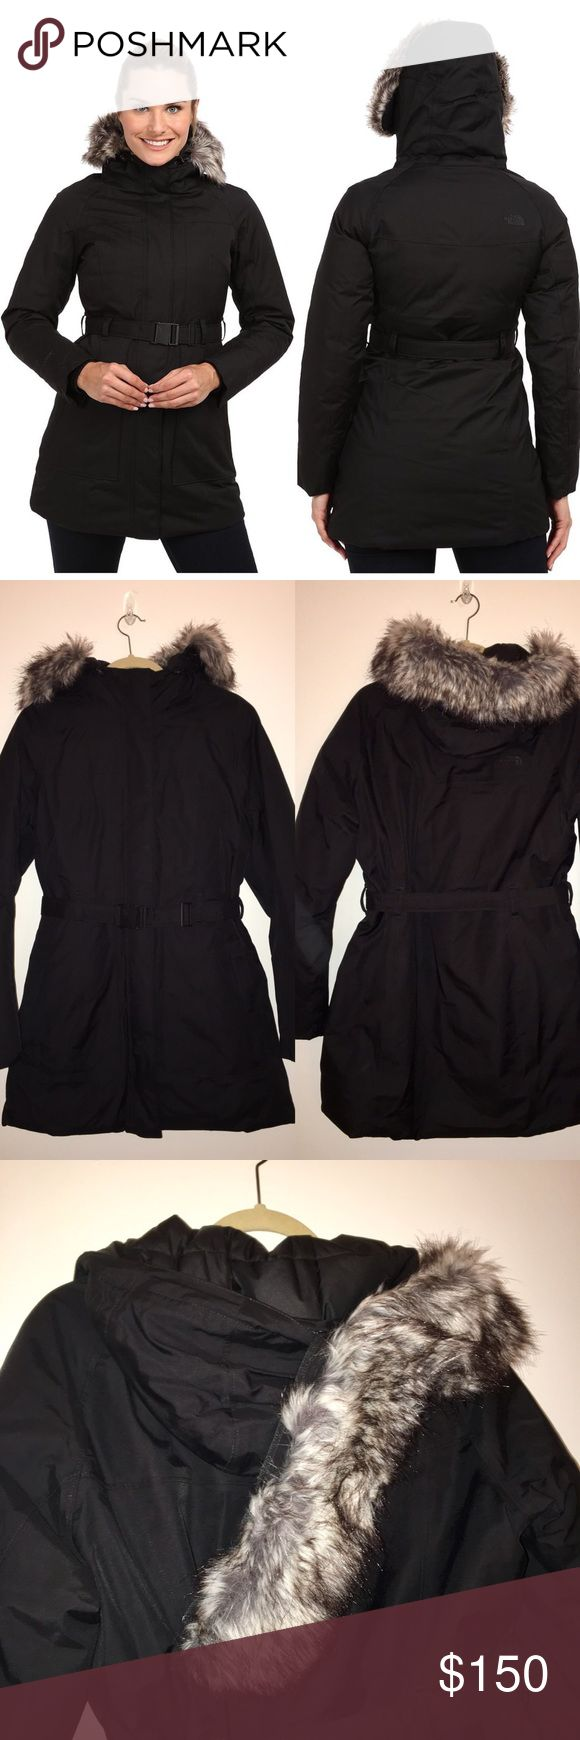 Brooklyn Jacket | The North Face Black Brooklyn Jacket by North Face. Flattering cut with belted waist. Fur-trimmed hood; fur is removable (see pic). Worn 2-3x; excellent condition/like new with no signs of wear. North Face Jackets & Coats